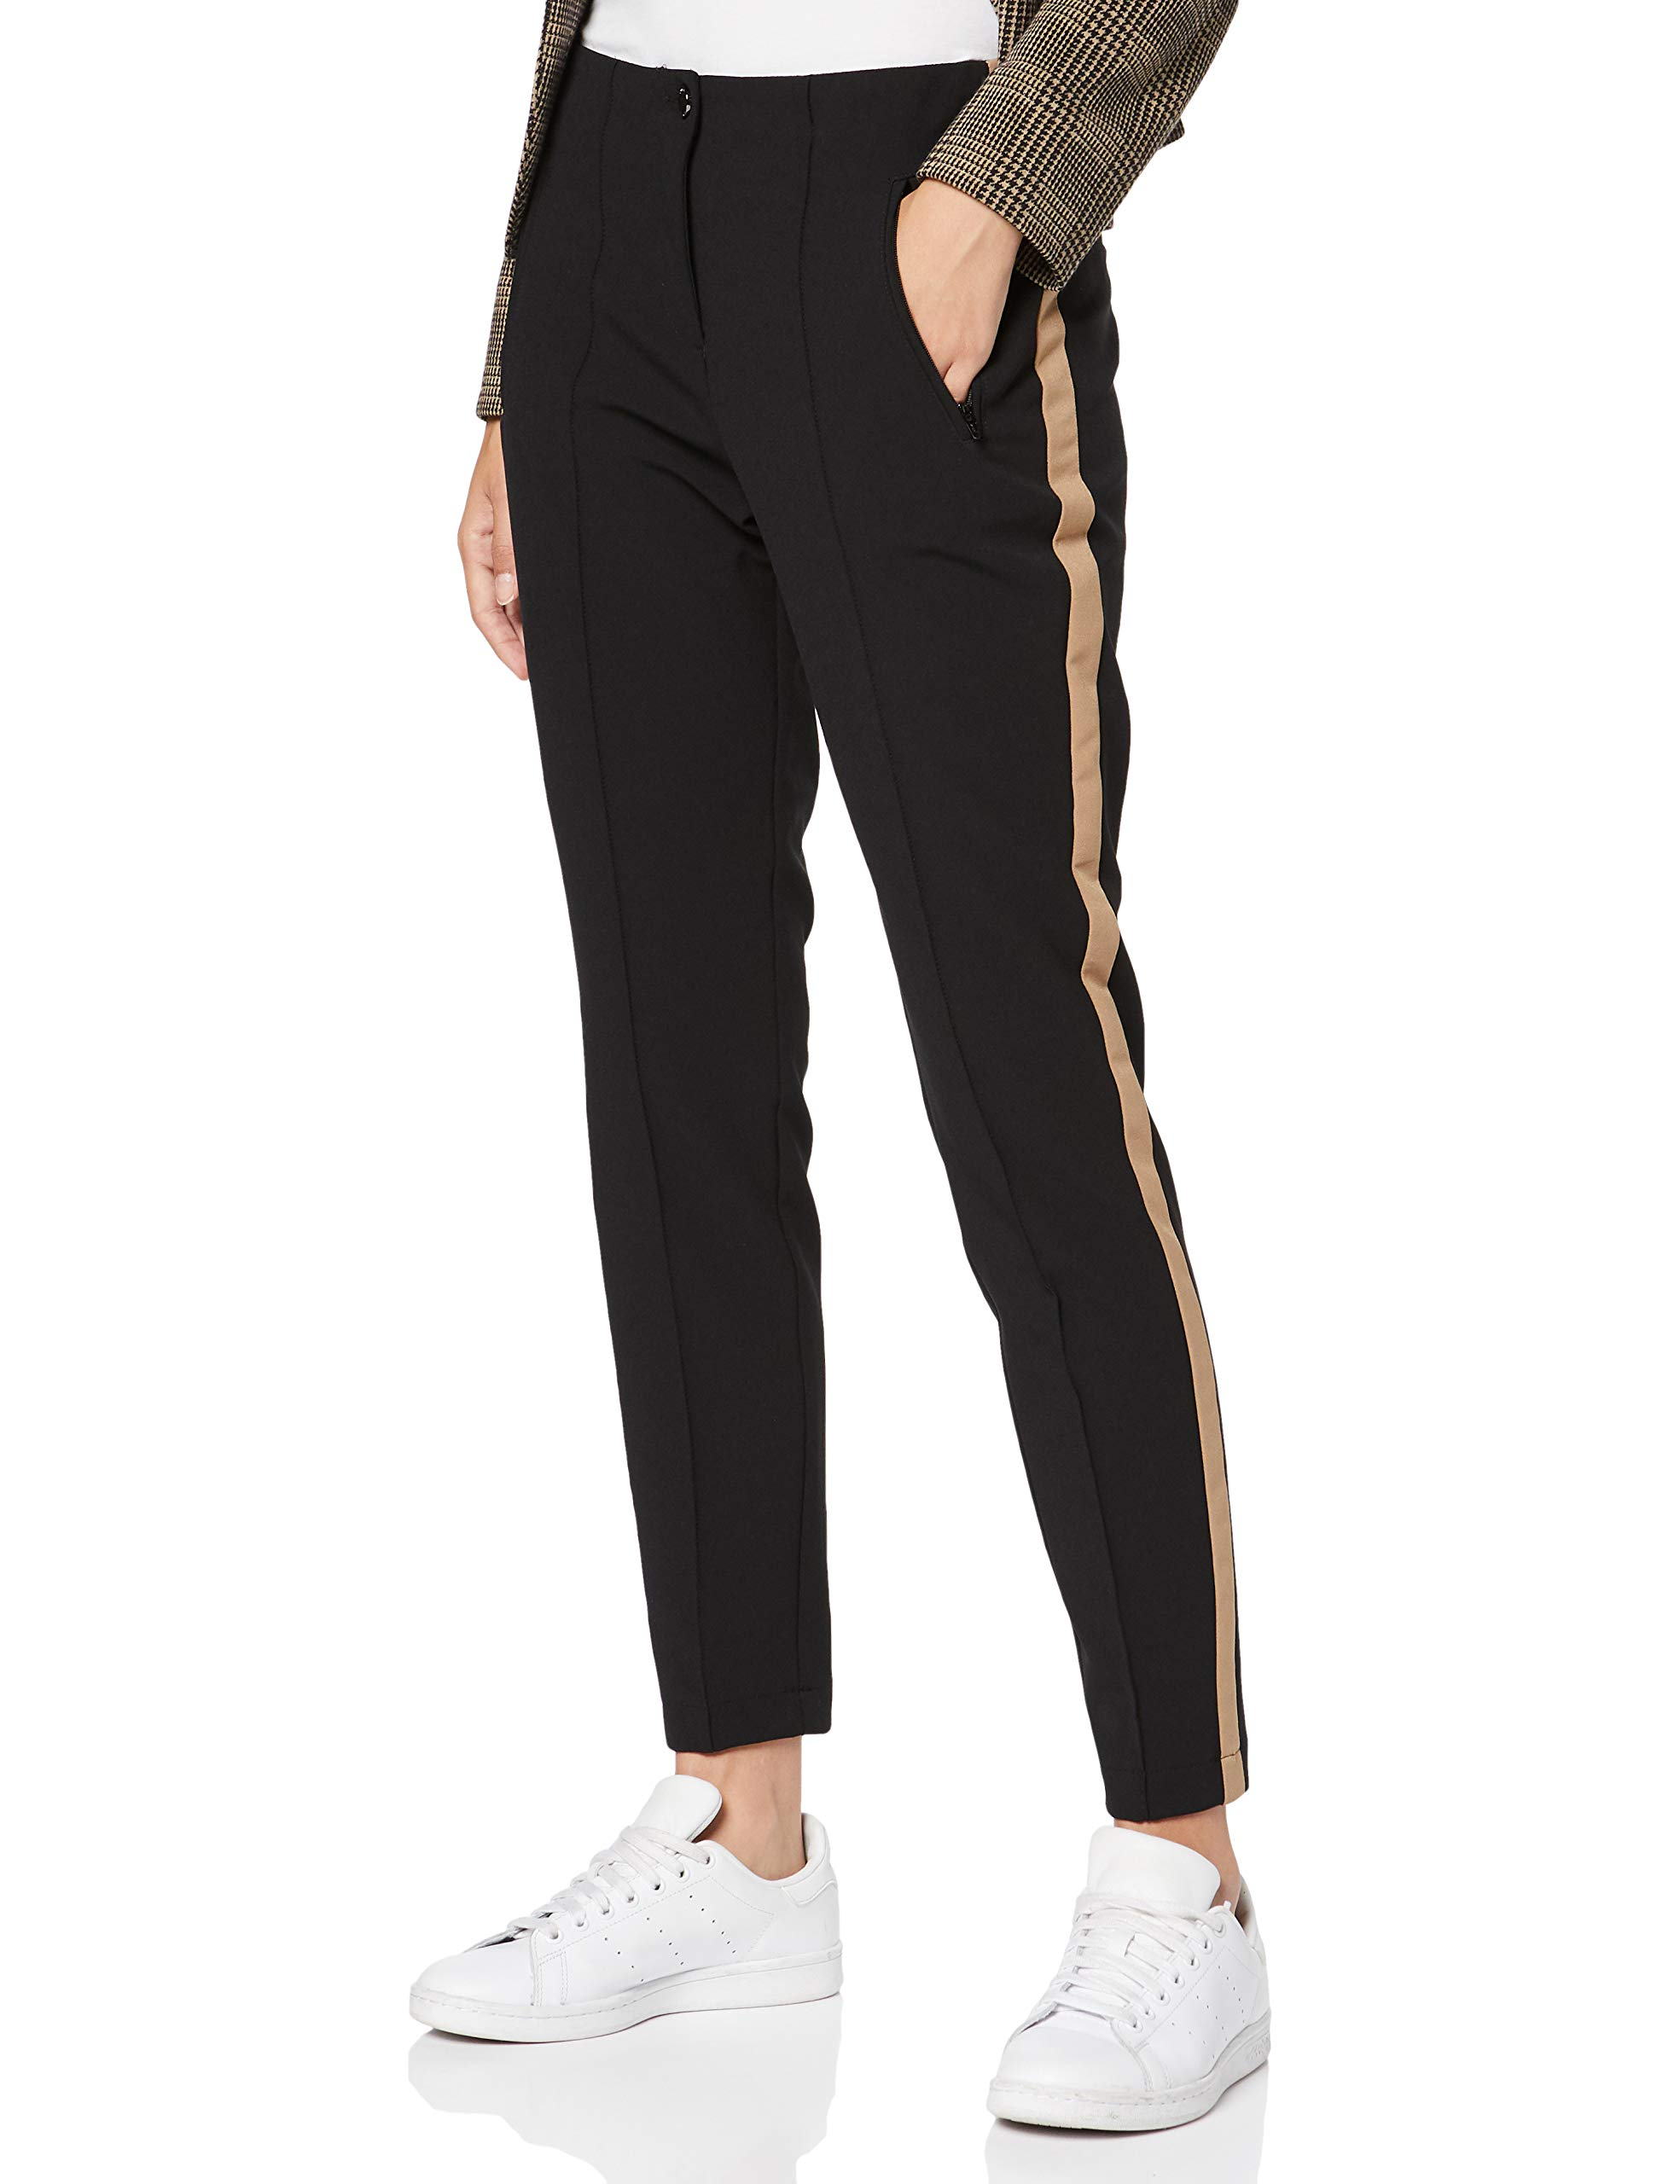 oliver Fabricant38Femme Black S 01 899 Label 76 PantalonNoirforever 5564 999940taille PXiOkZu